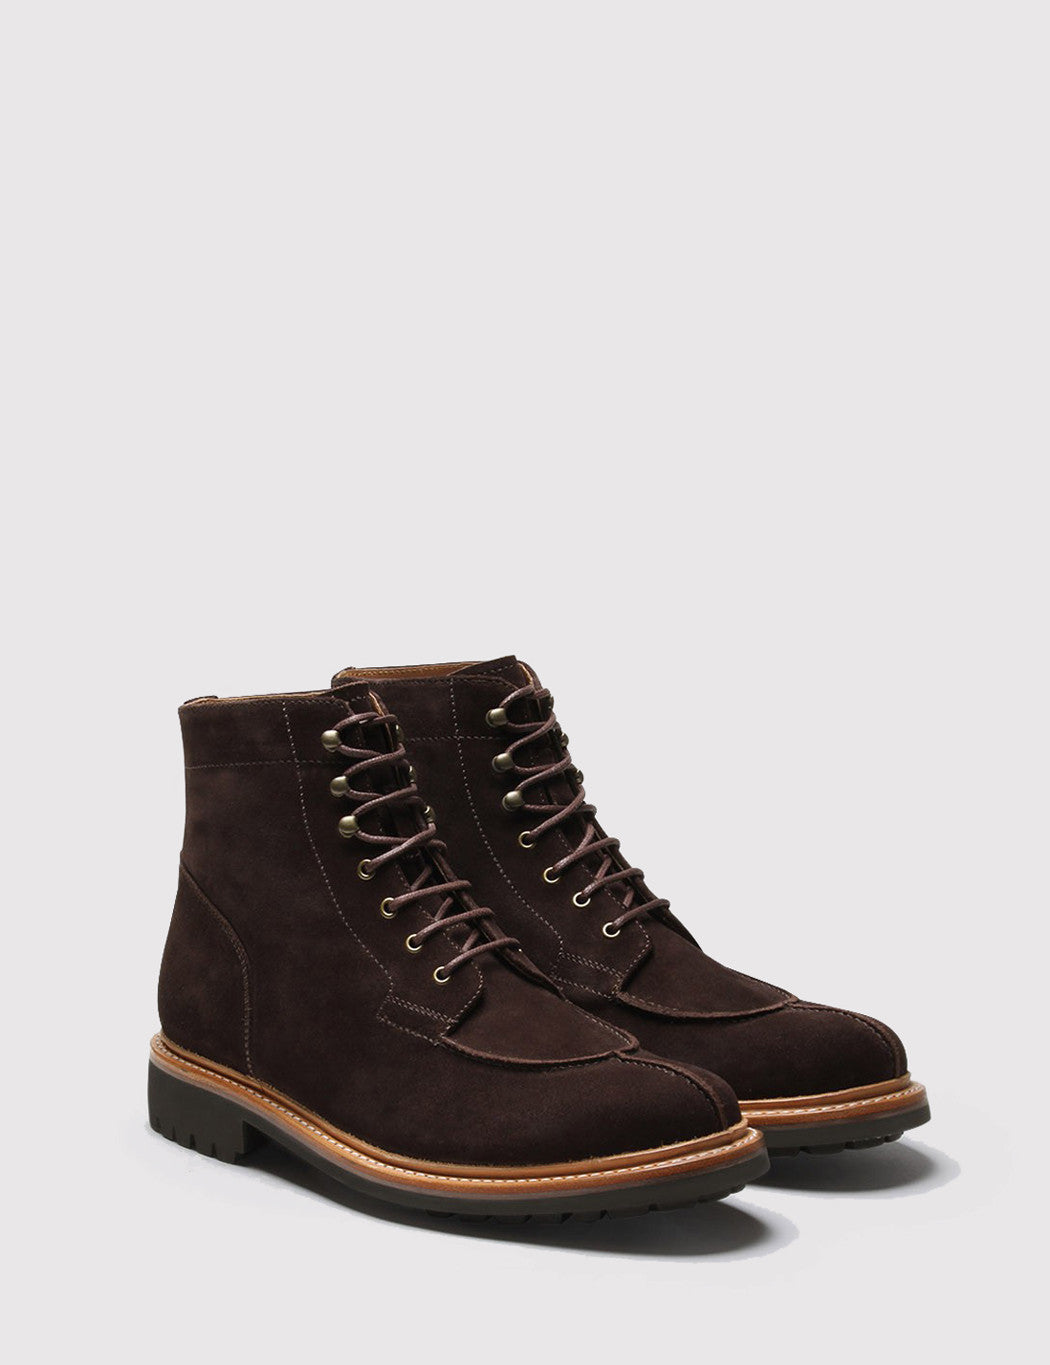 Grenson Grover Suede Apron Boot - Chocolate